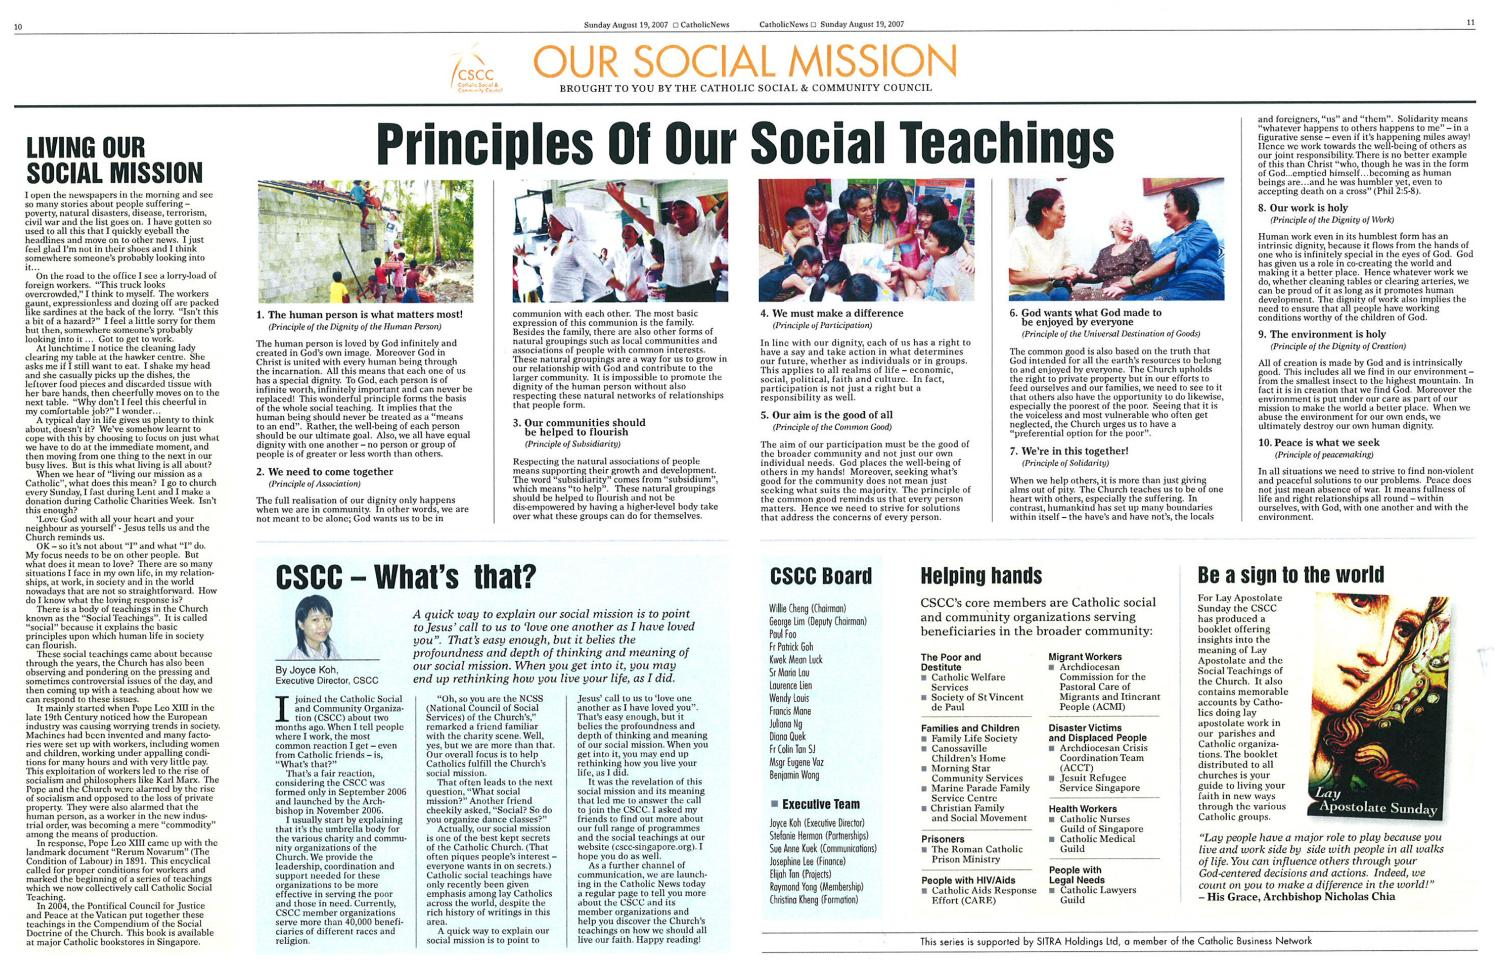 Our Social Mission 2007 2017 by Our Social Mission issuu